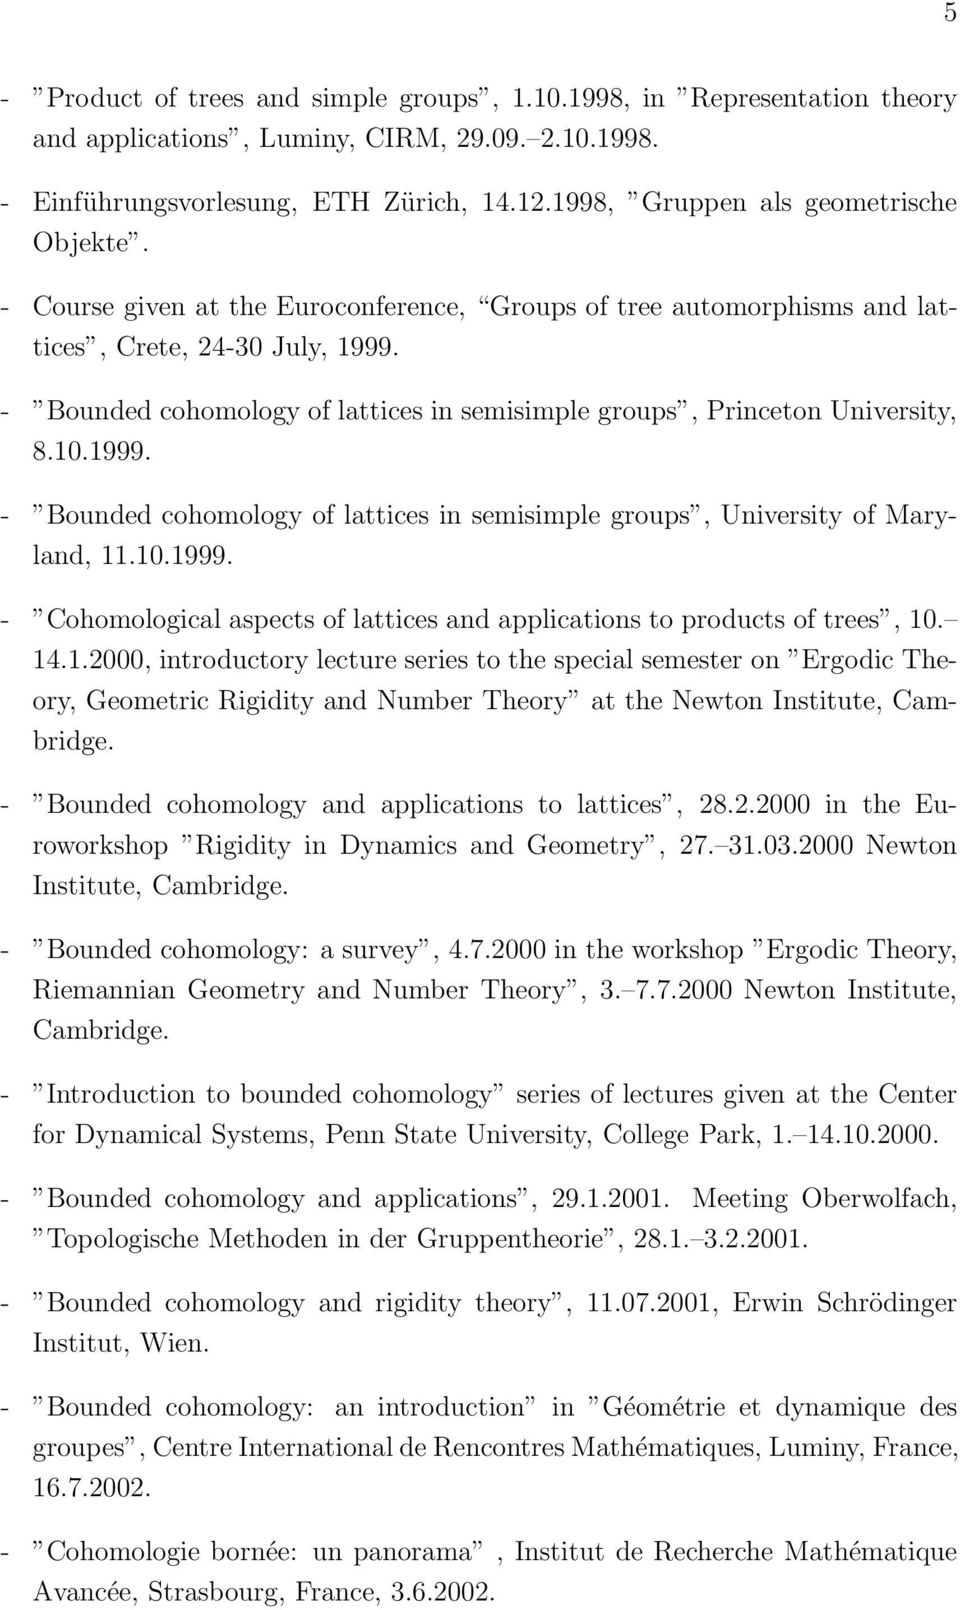 - Bounded cohomology of lattices in semisimple groups, Princeton University, 8.10.1999. - Bounded cohomology of lattices in semisimple groups, University of Maryland, 11.10.1999. - Cohomological aspects of lattices and applications to products of trees, 10.